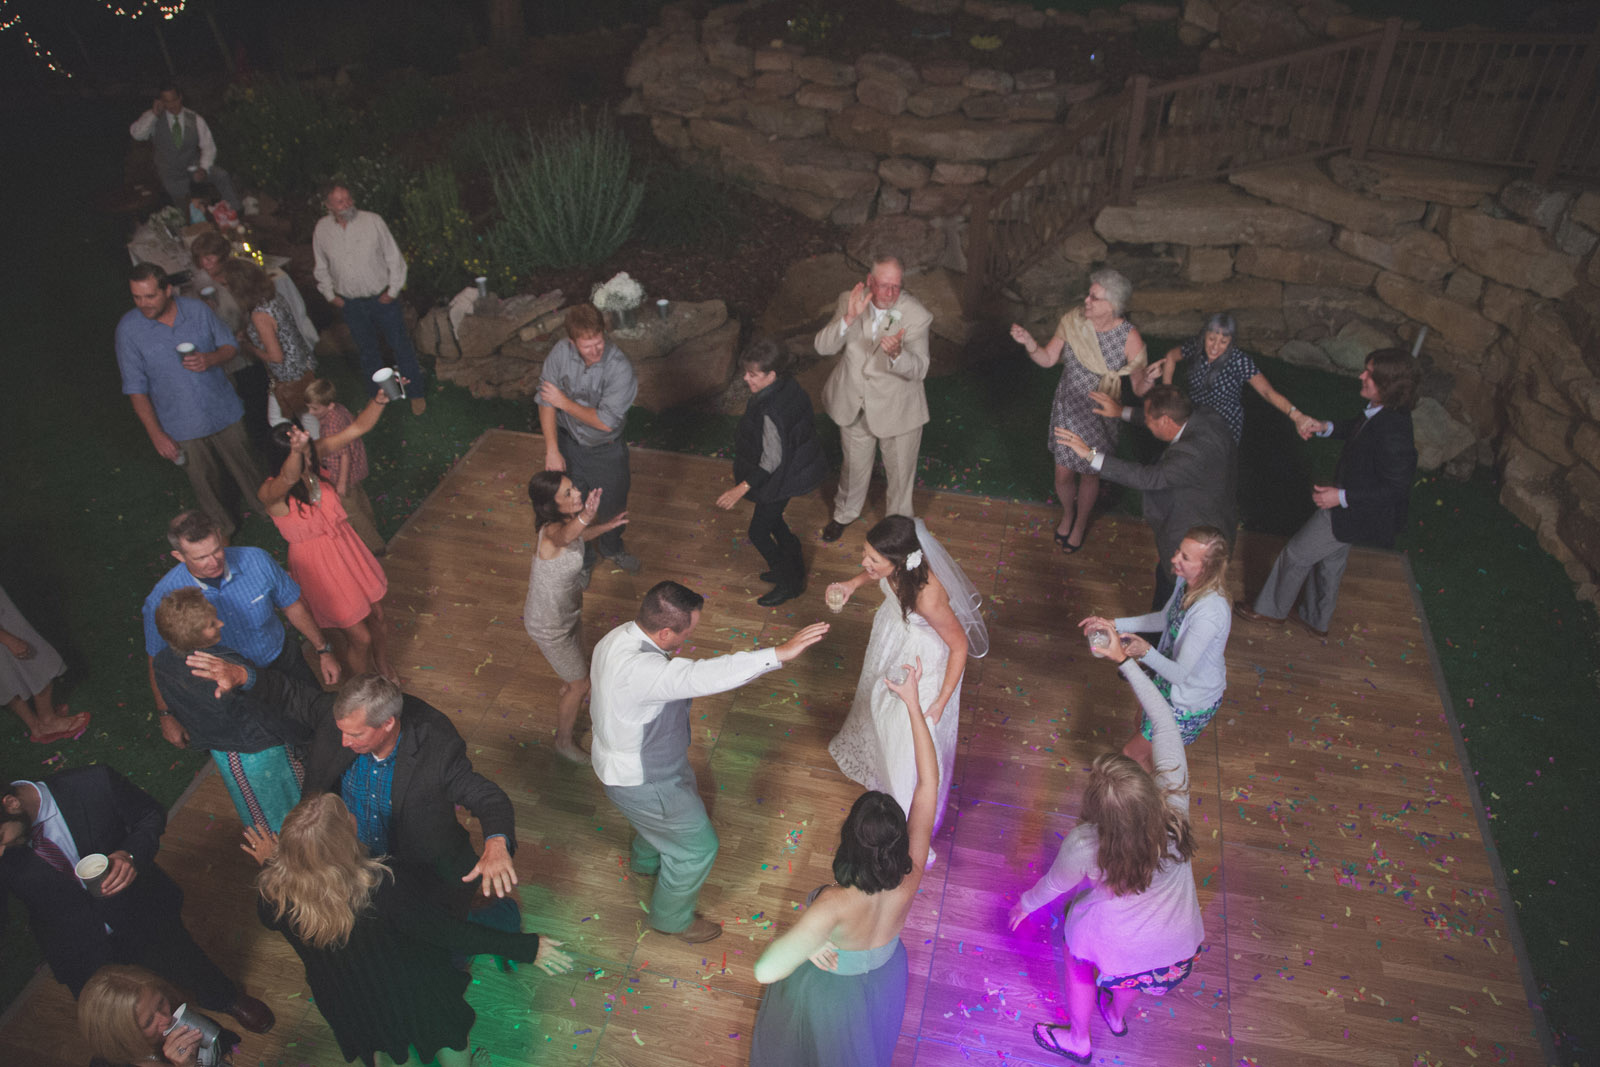 239-reception-ideas-reception-farmington-nm-co-new-mexico-colorado-mancos-ideas-string-lights-cabin-outside-natural-wedding-night-strobe-flash-dance-party